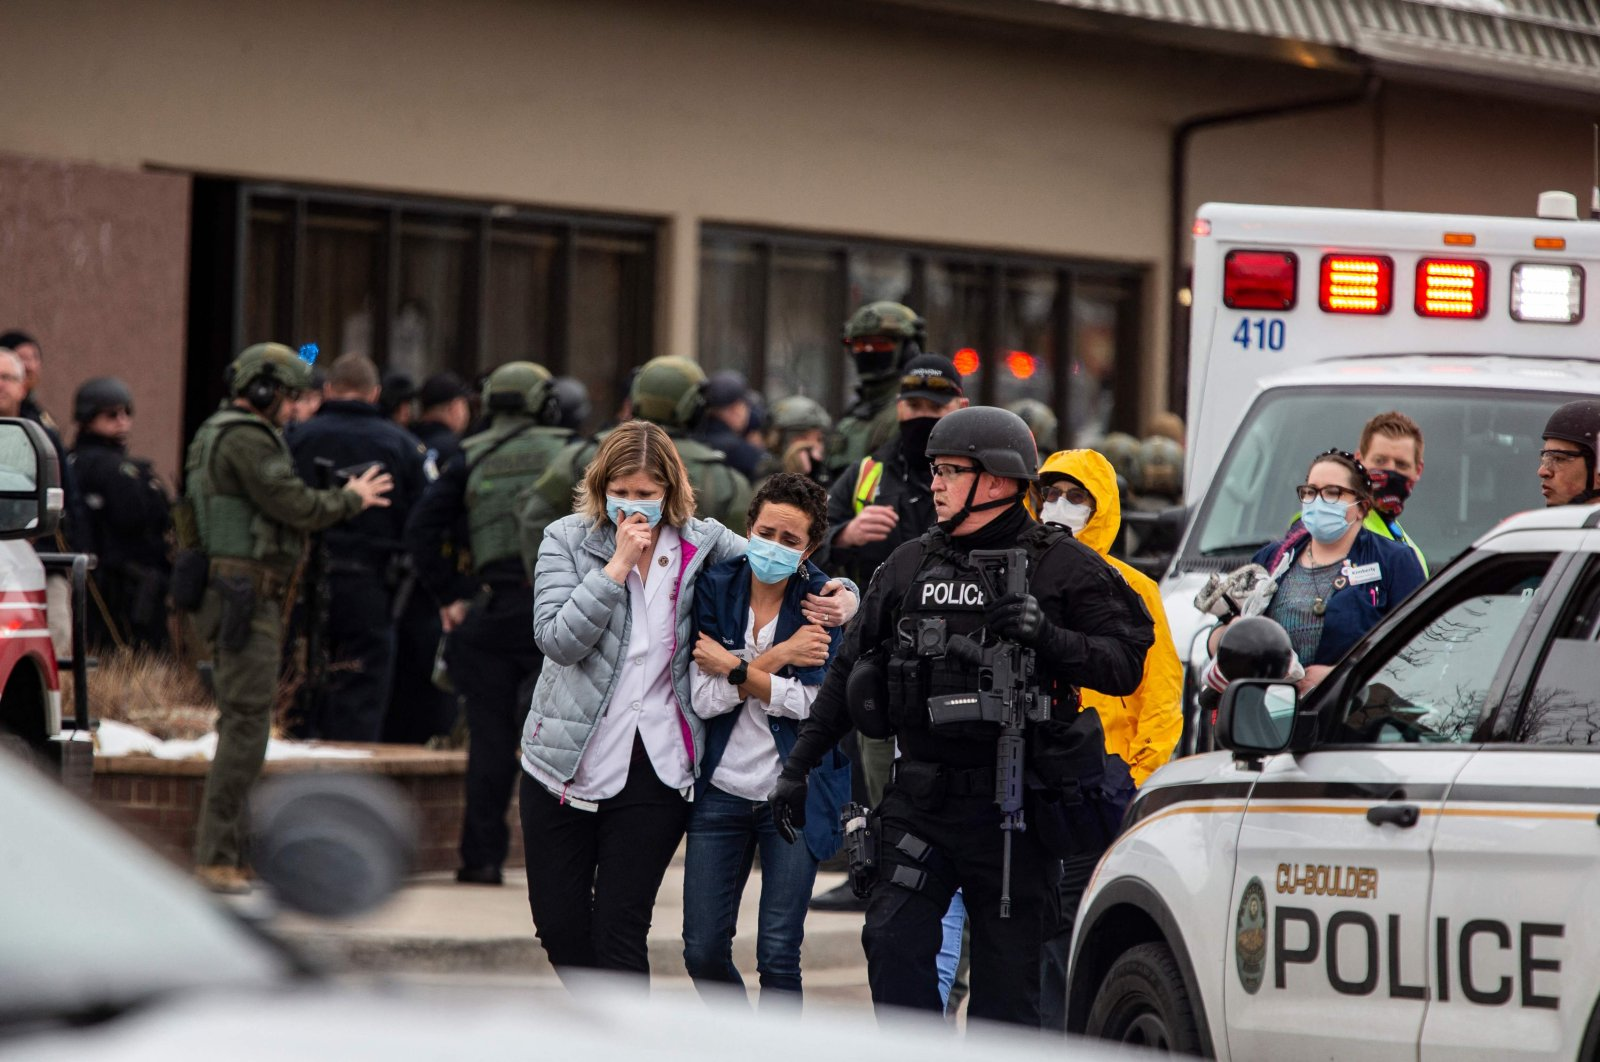 Healthcare workers walk out of a King Sooper's Grocery store after a gunman opened fire in Boulder, Colorado, U.S., March 22, 2021. (AFP Photo)